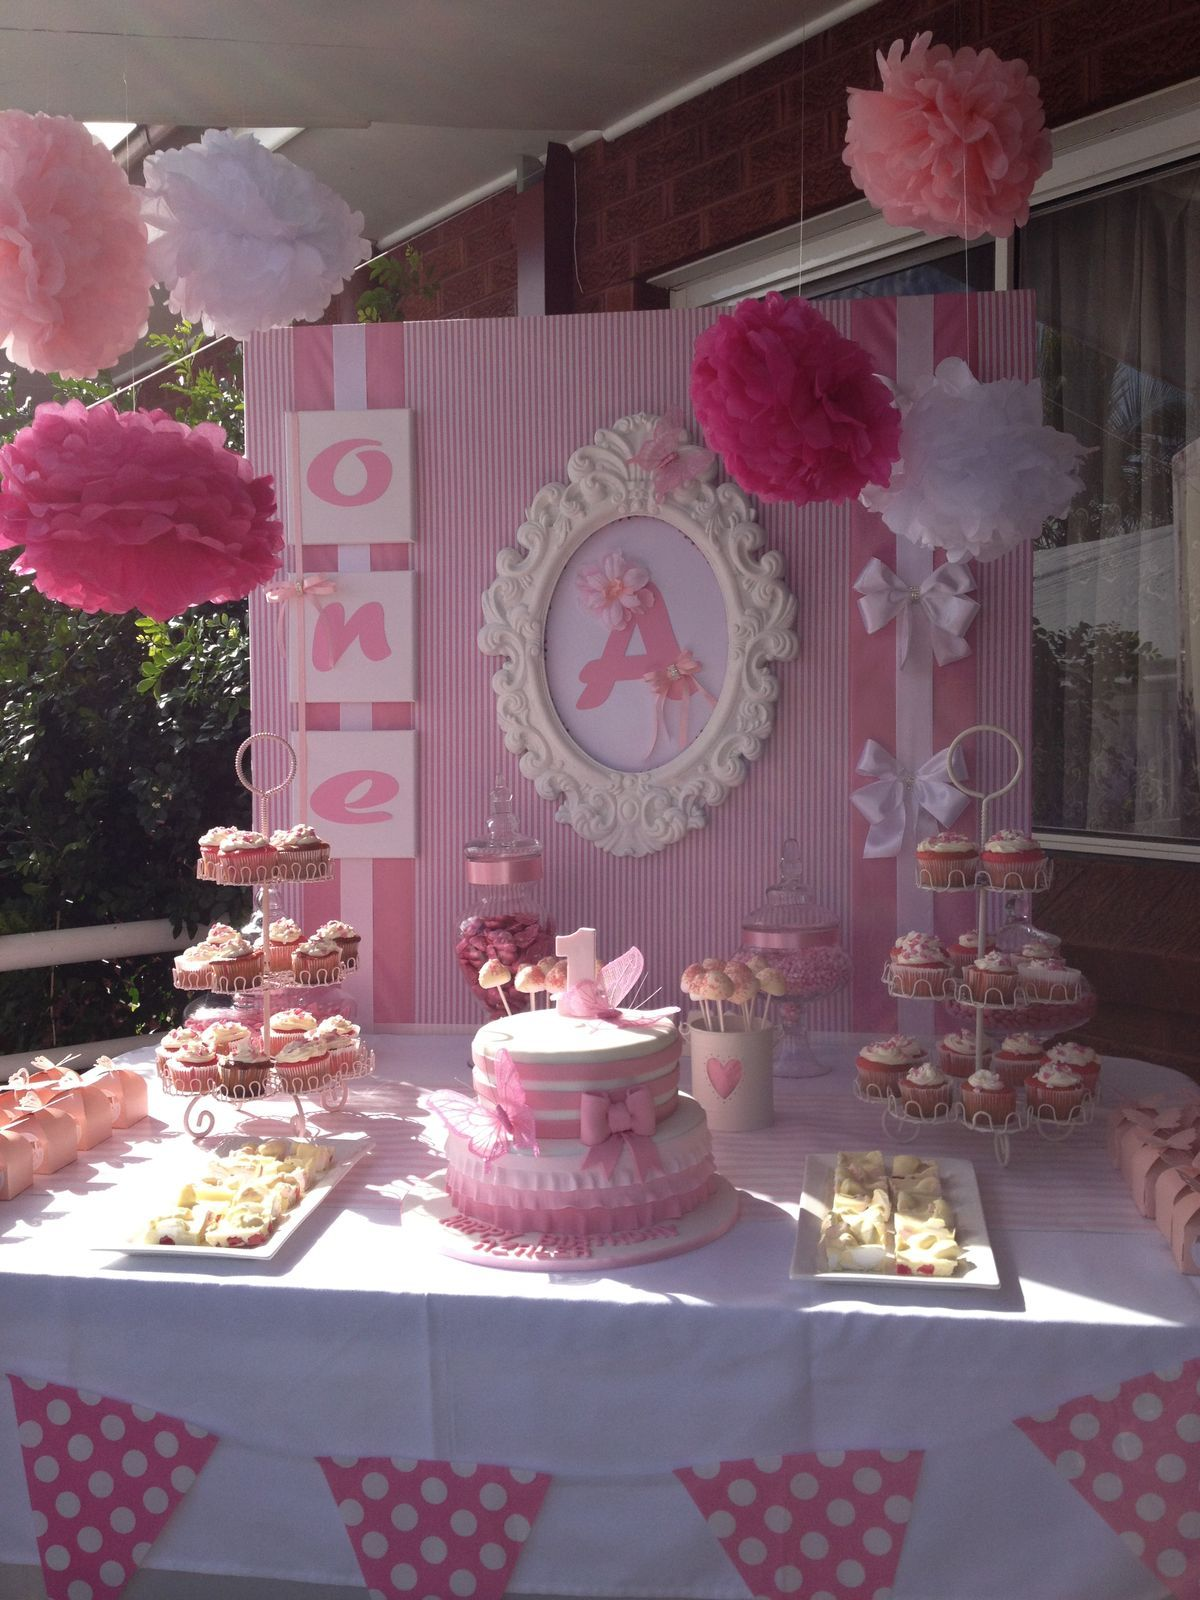 Pinterest Decoracion Baby Shower.Pin By Maikia Moua On Baby Shower For Girls Ideas